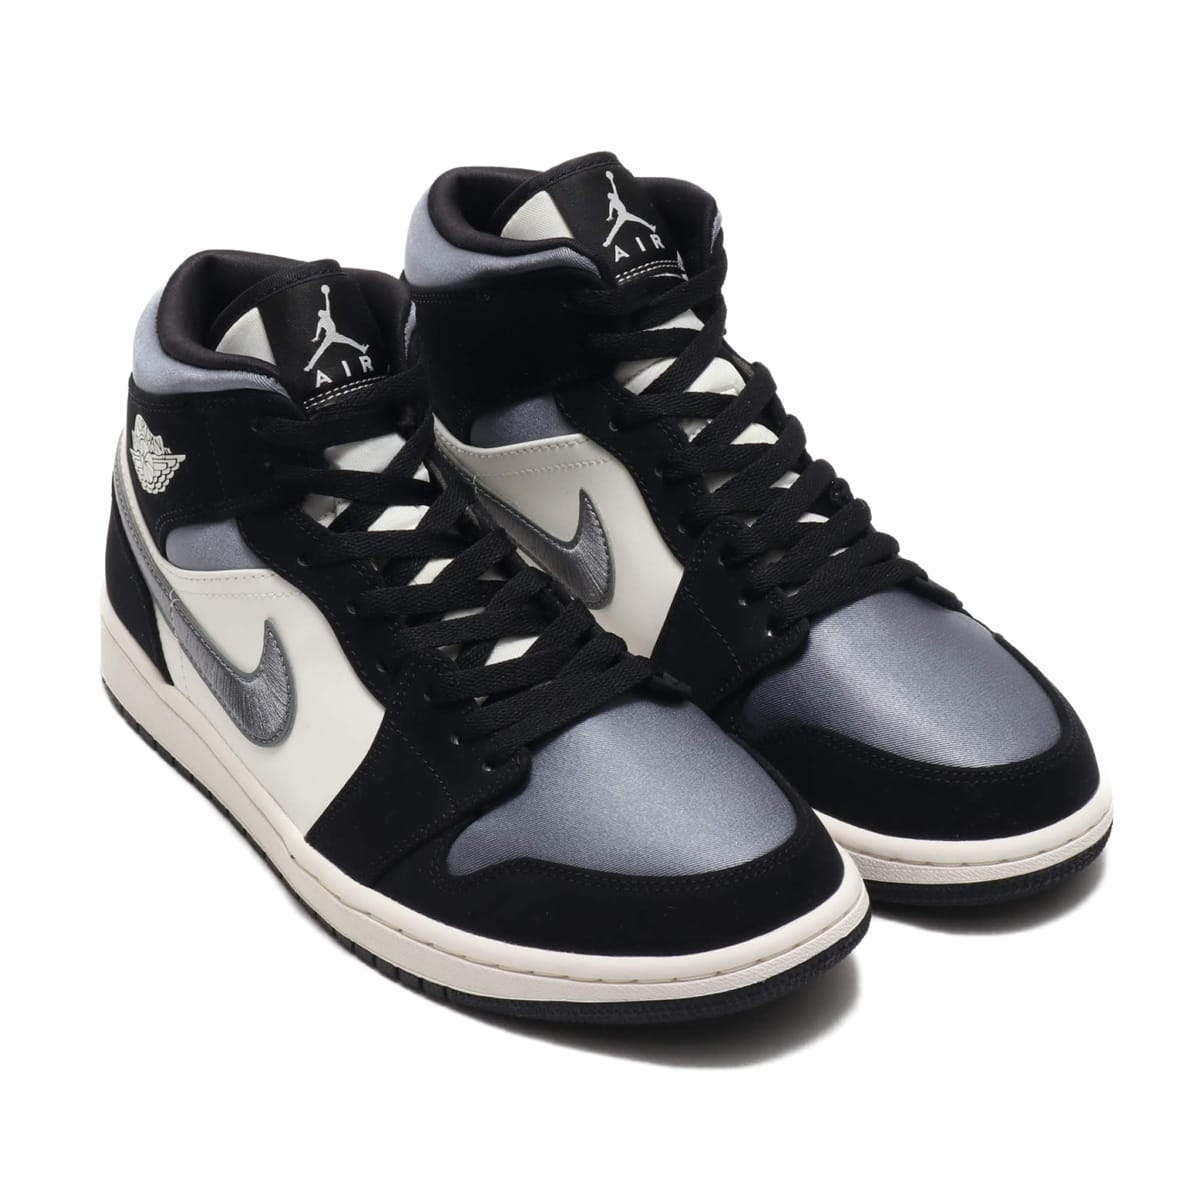 JORDAN BRAND AIR JORDAN 1 MID SE BLACK/SMOKE GREY-SAIL 20SP-S_photo_large